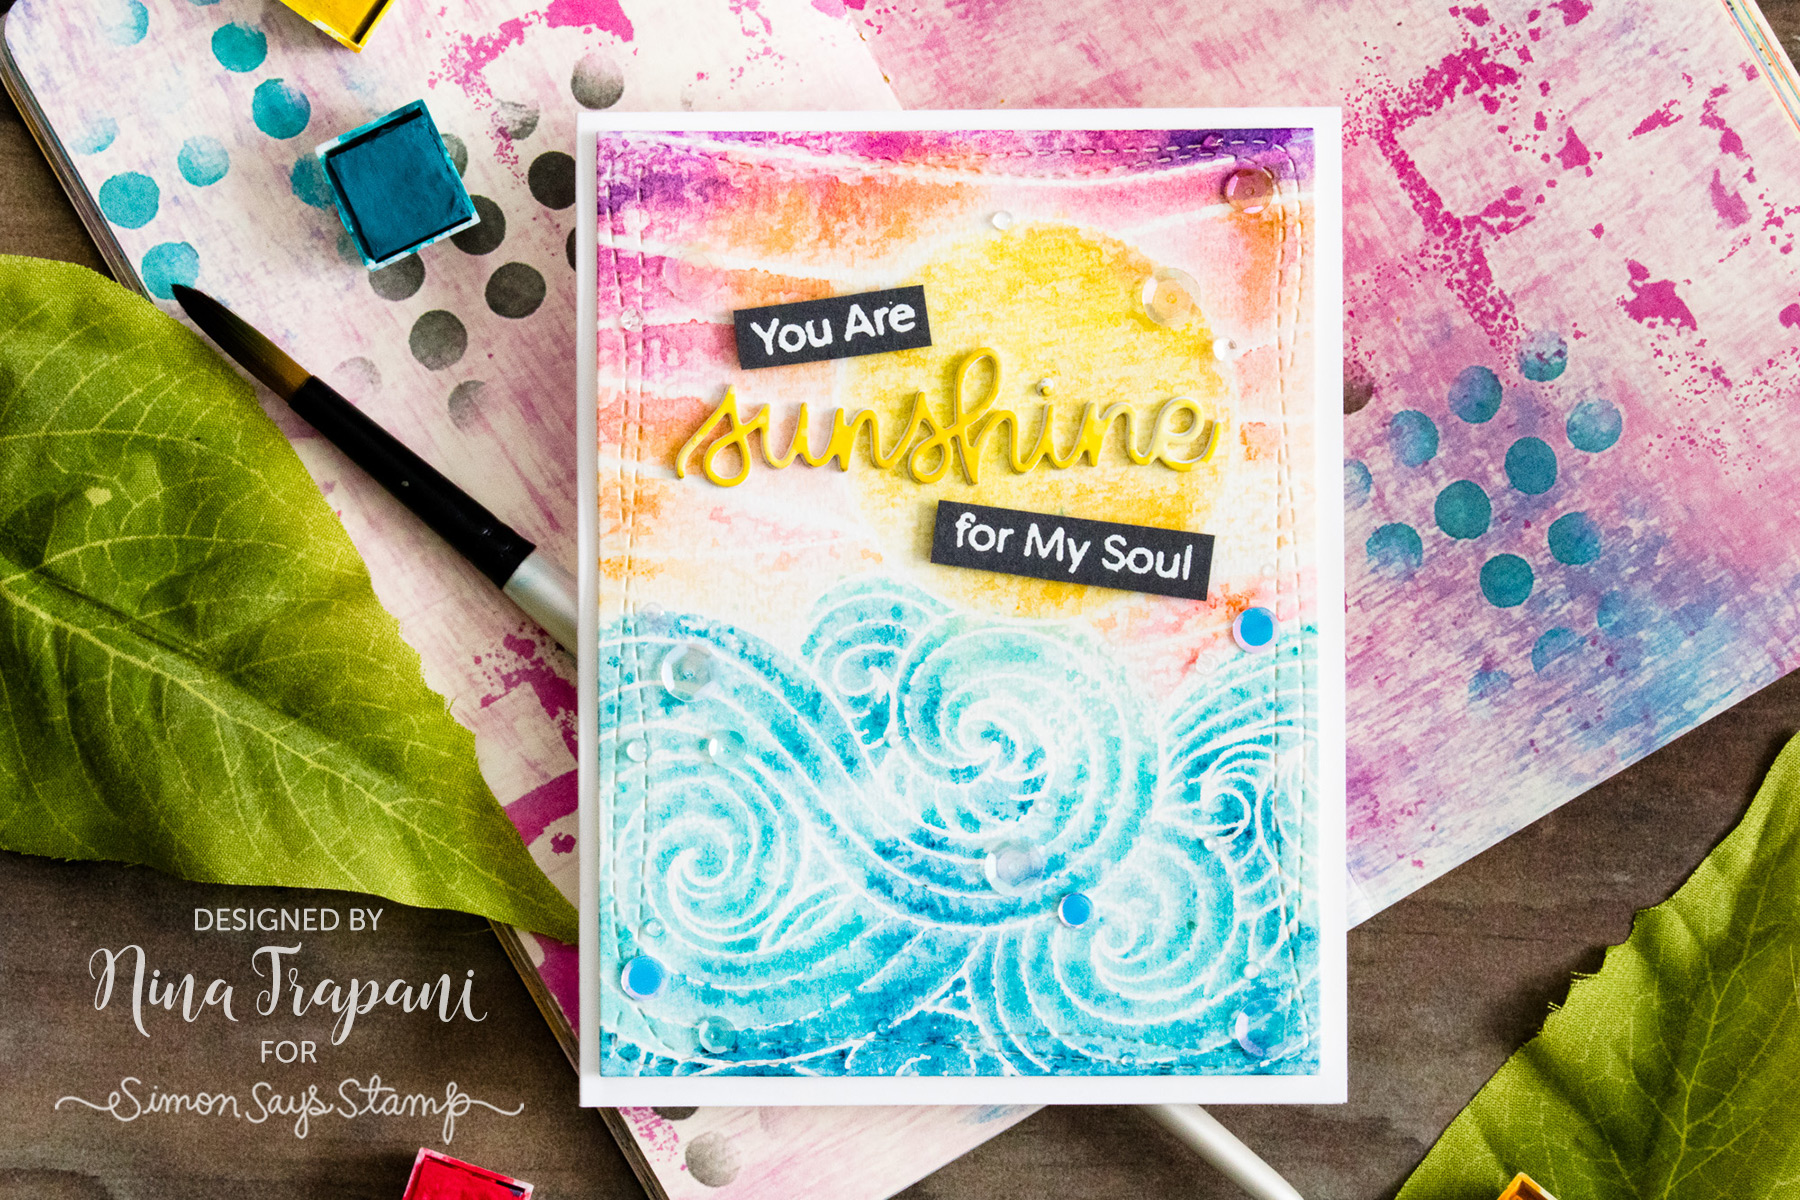 Studio Monday with Nina-Marie: Background Stamping 3 Ways